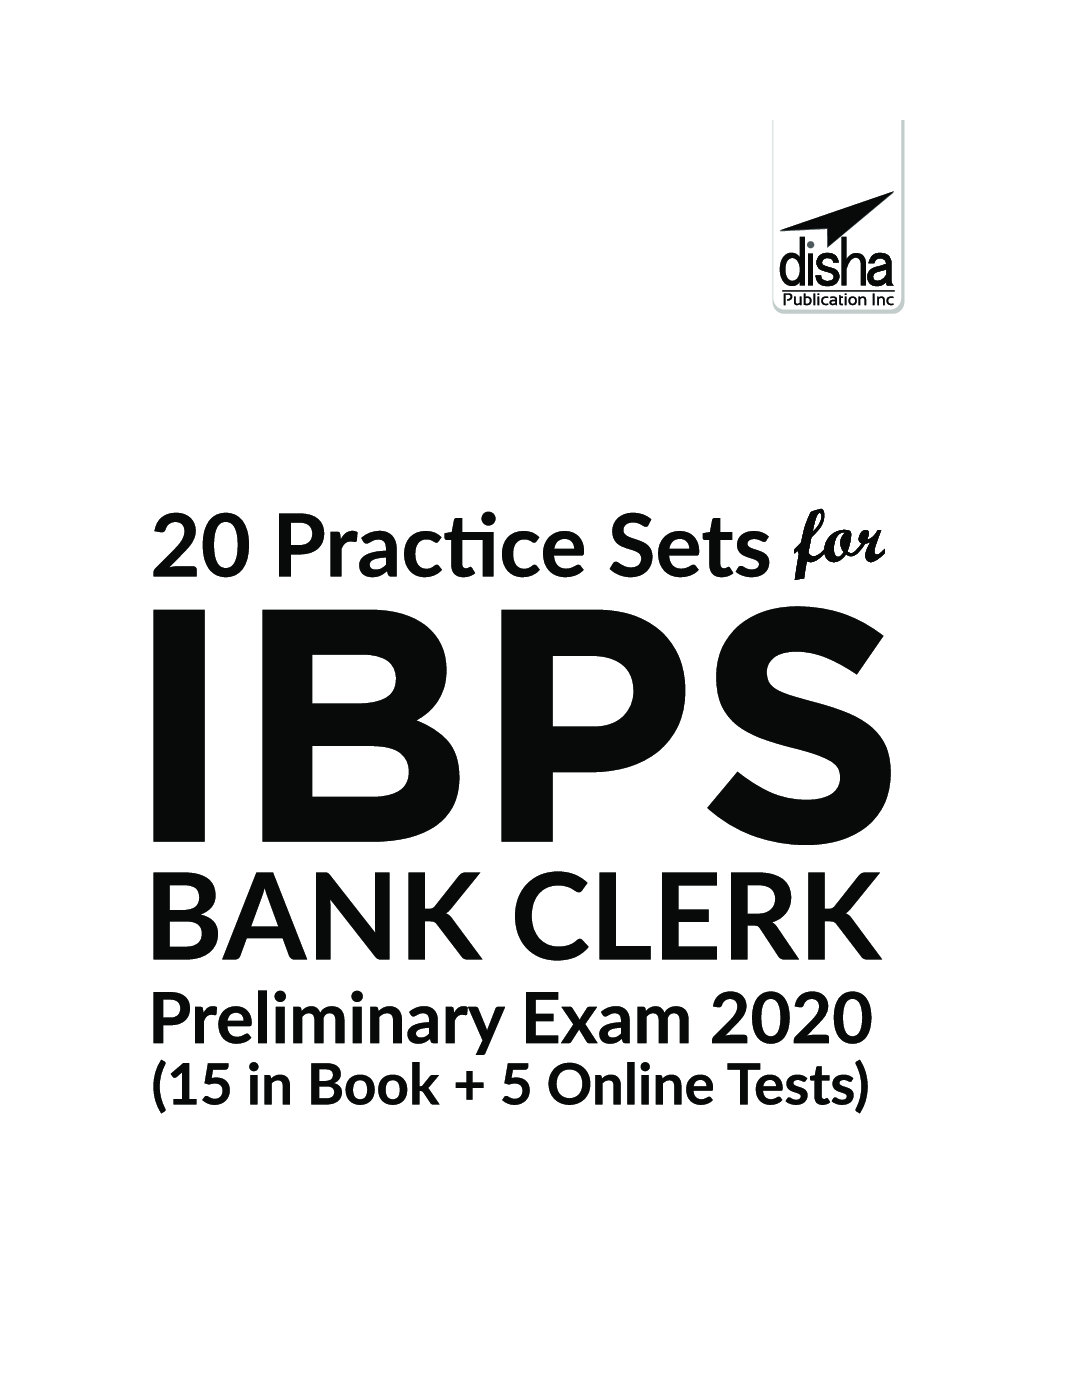 20 Practice Sets For IBPS Bank Clerk Preliminary Exam 2020 - 15 In Book + 5 Online Tests 5th Edition - Page 2